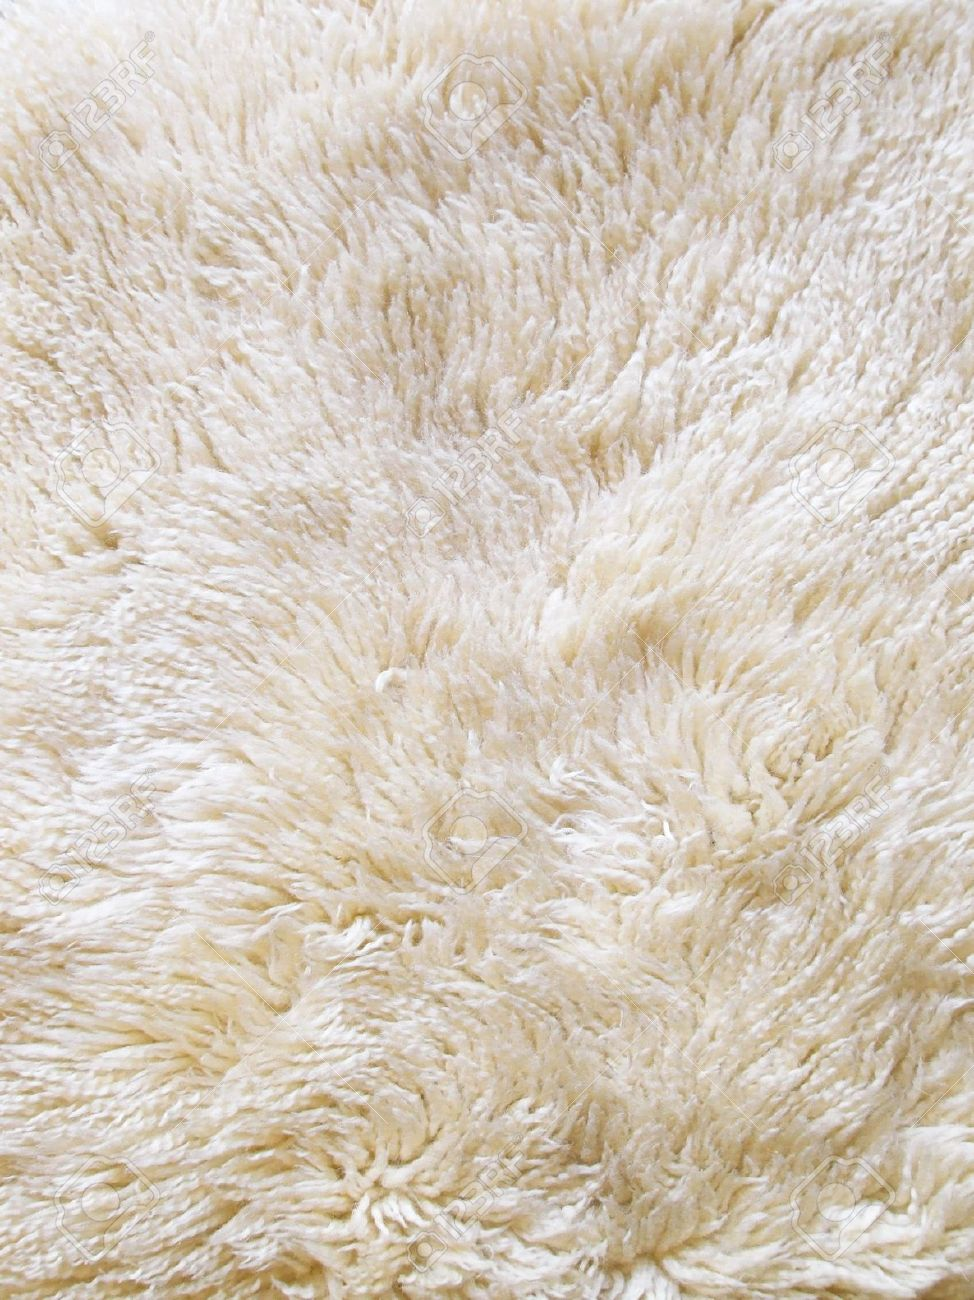 The wool texture of a fluffy sheepsking rug Stock Photo - 8071258